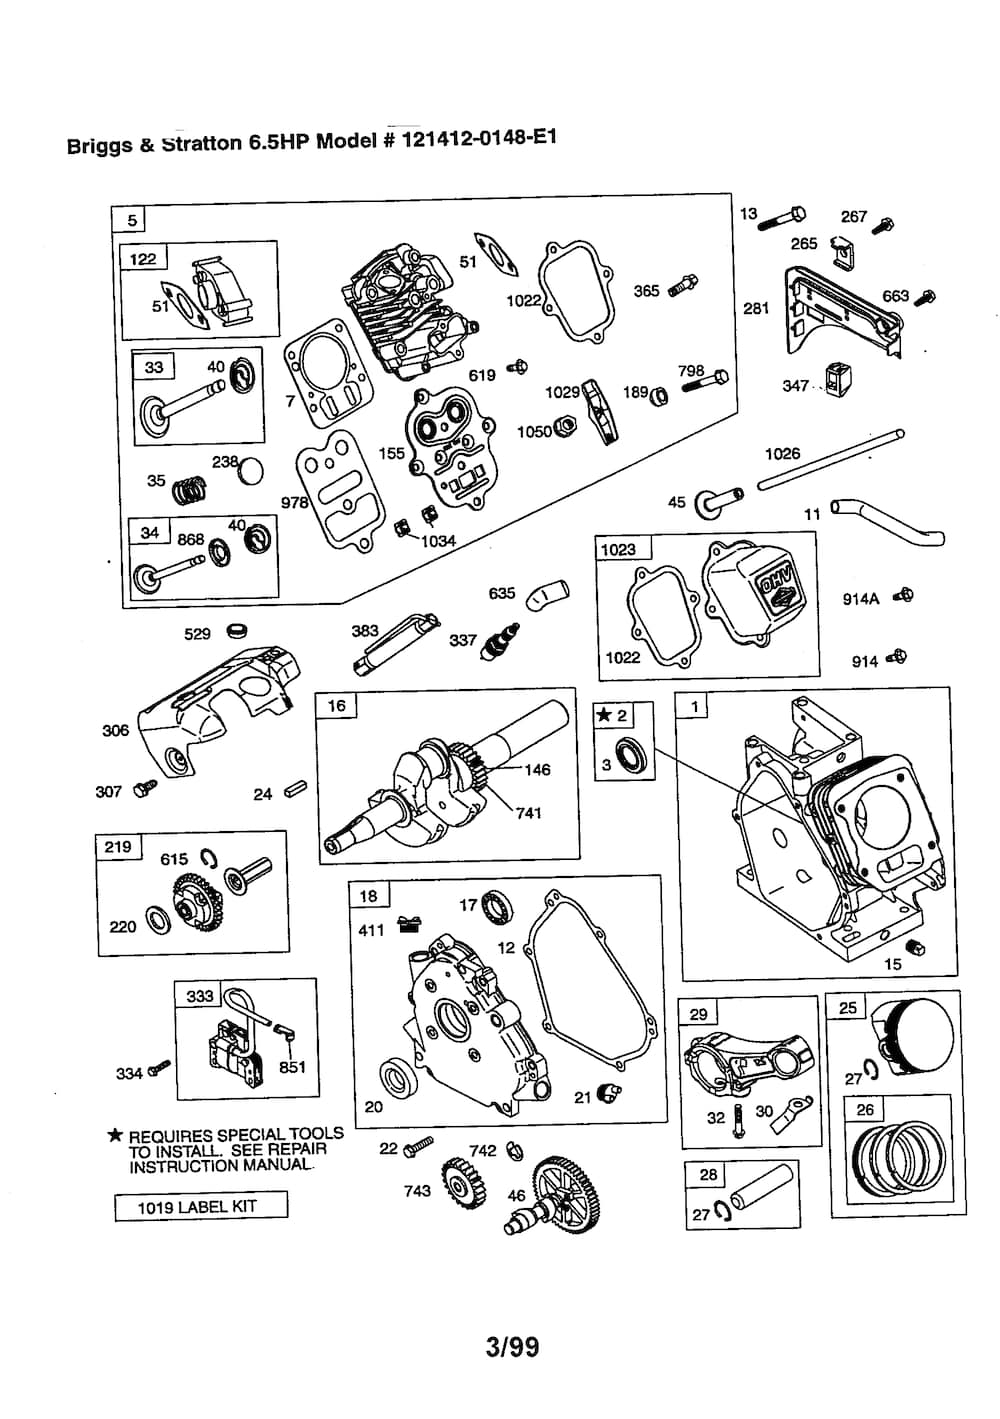 Briggs & Stratton 6.5 Hp Engine Parts | Model 1214120148E1 | Sears in Briggs And Stratton Engine Parts Diagram